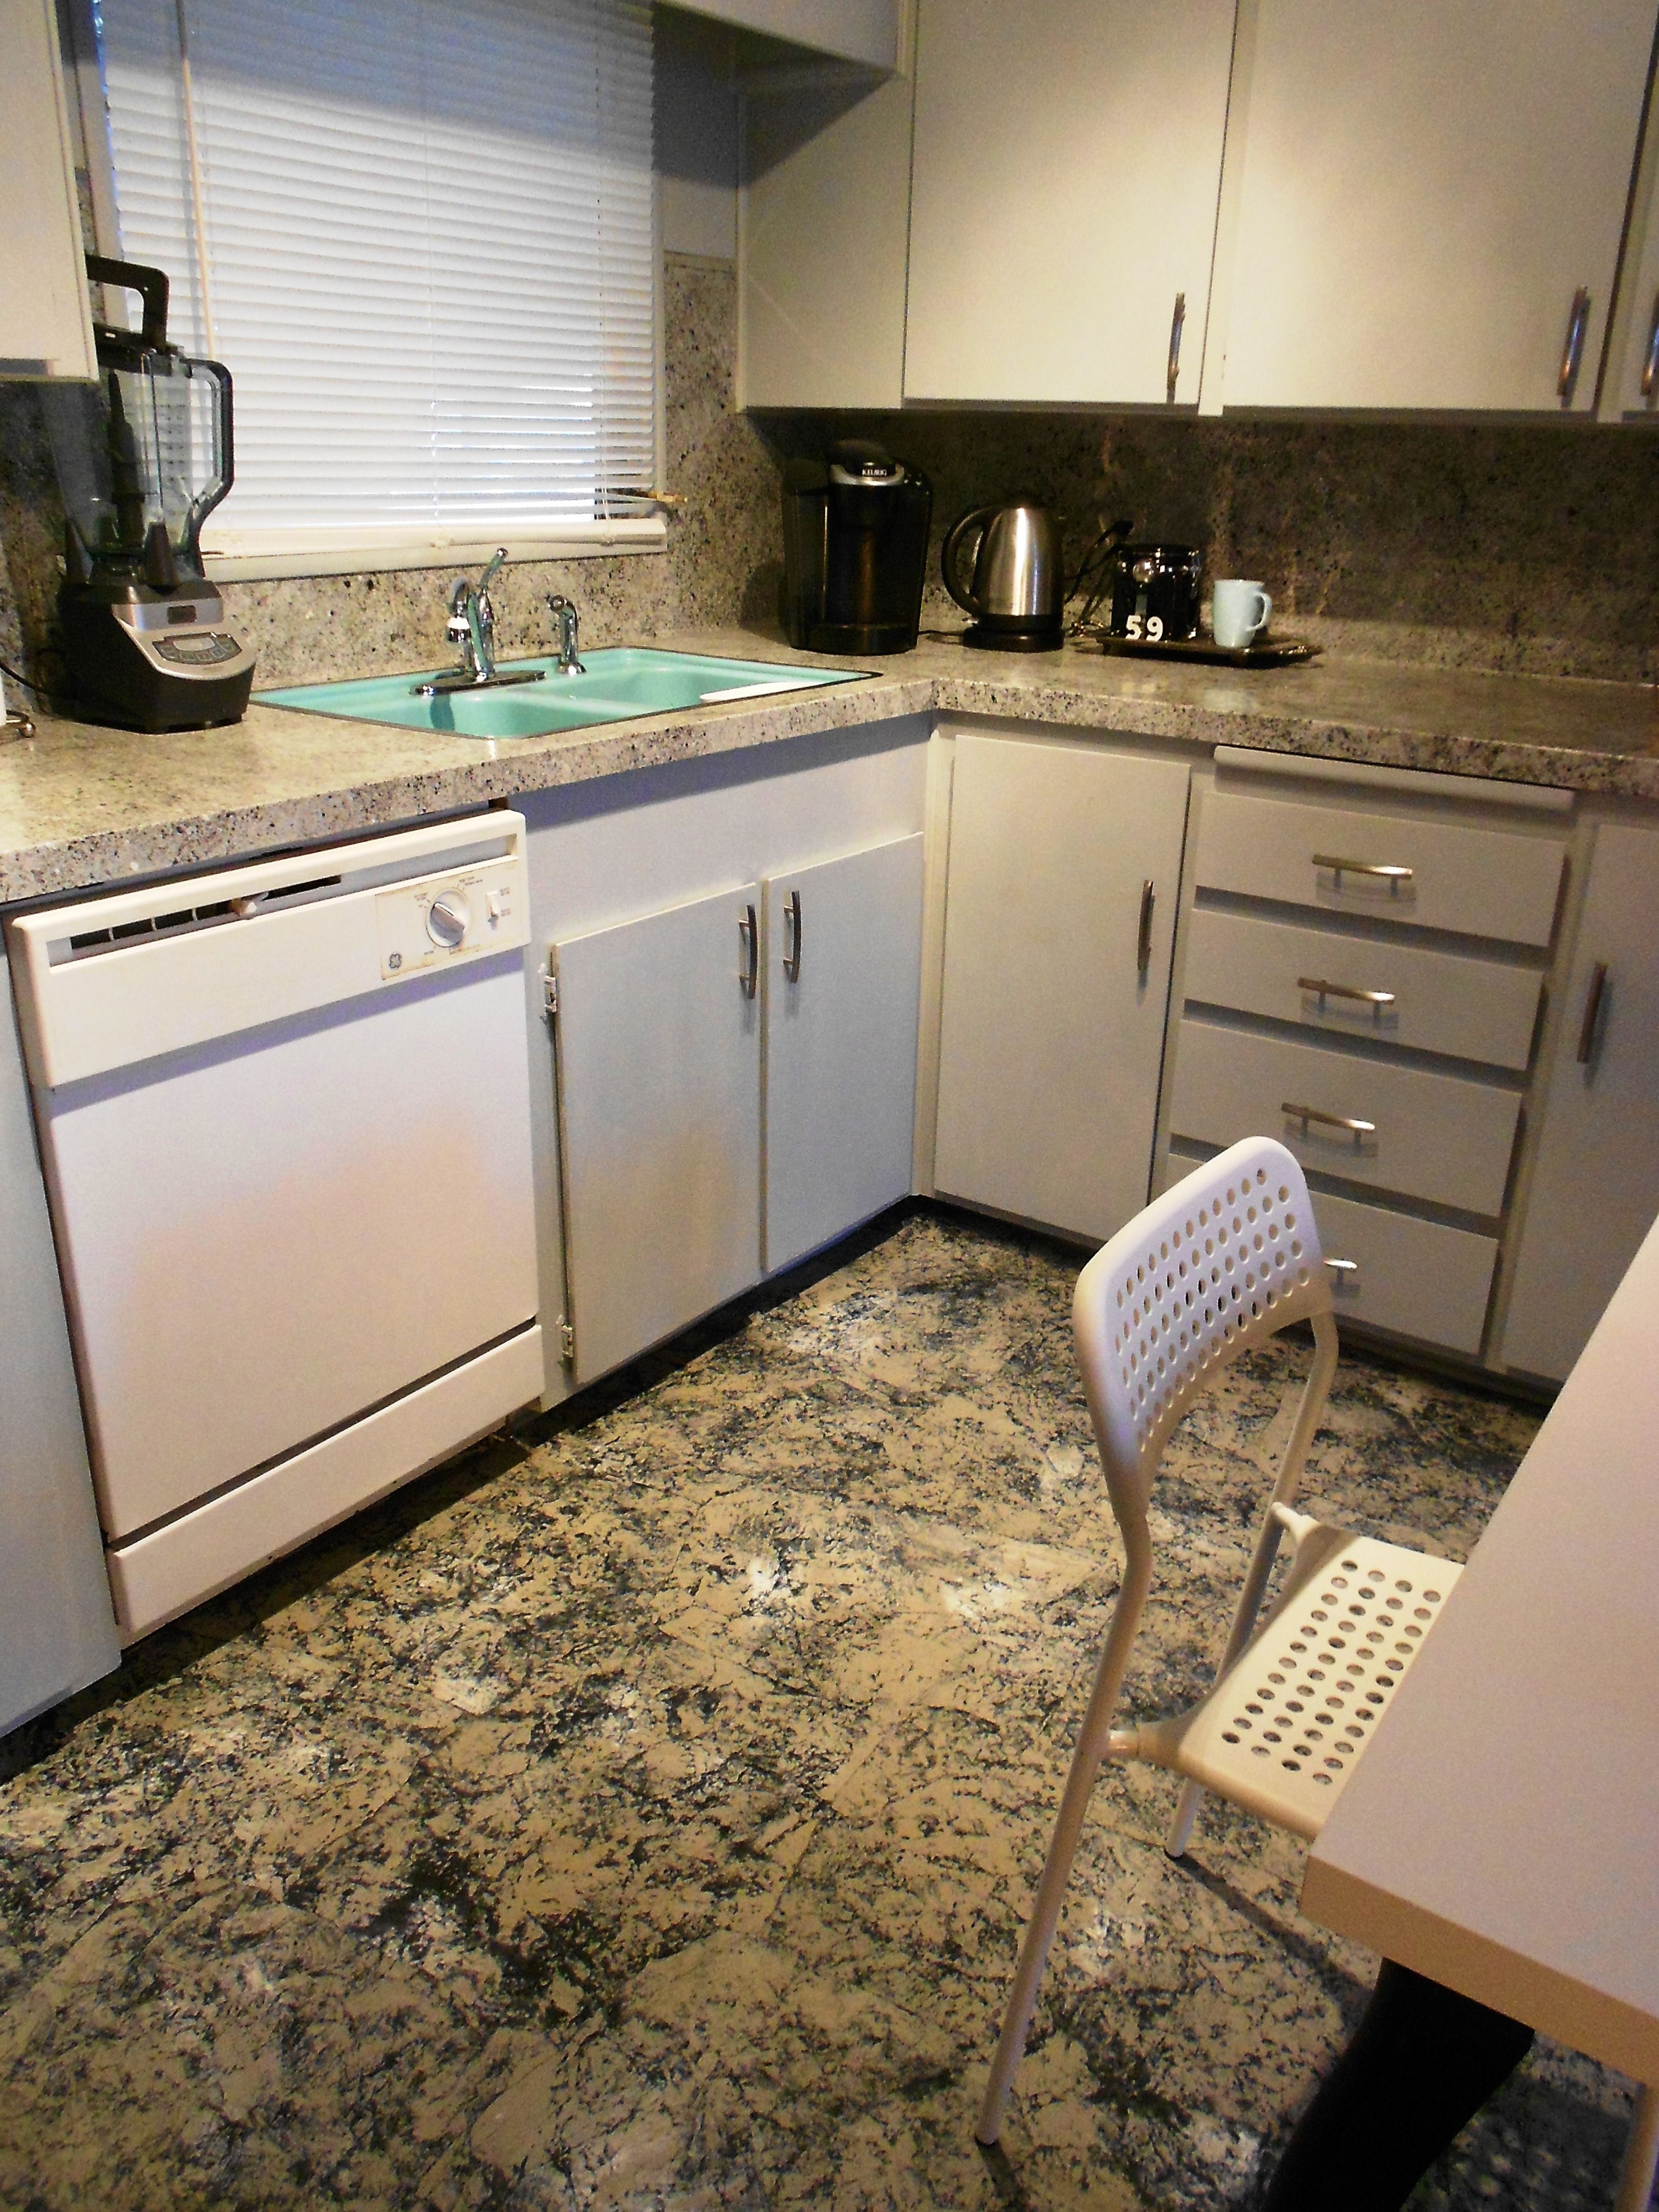 used kitchen countertops quartz countertops think decoupage cant be used in the kitchen again using sealer that is meant for sealing counter tops works just fine thanks very much